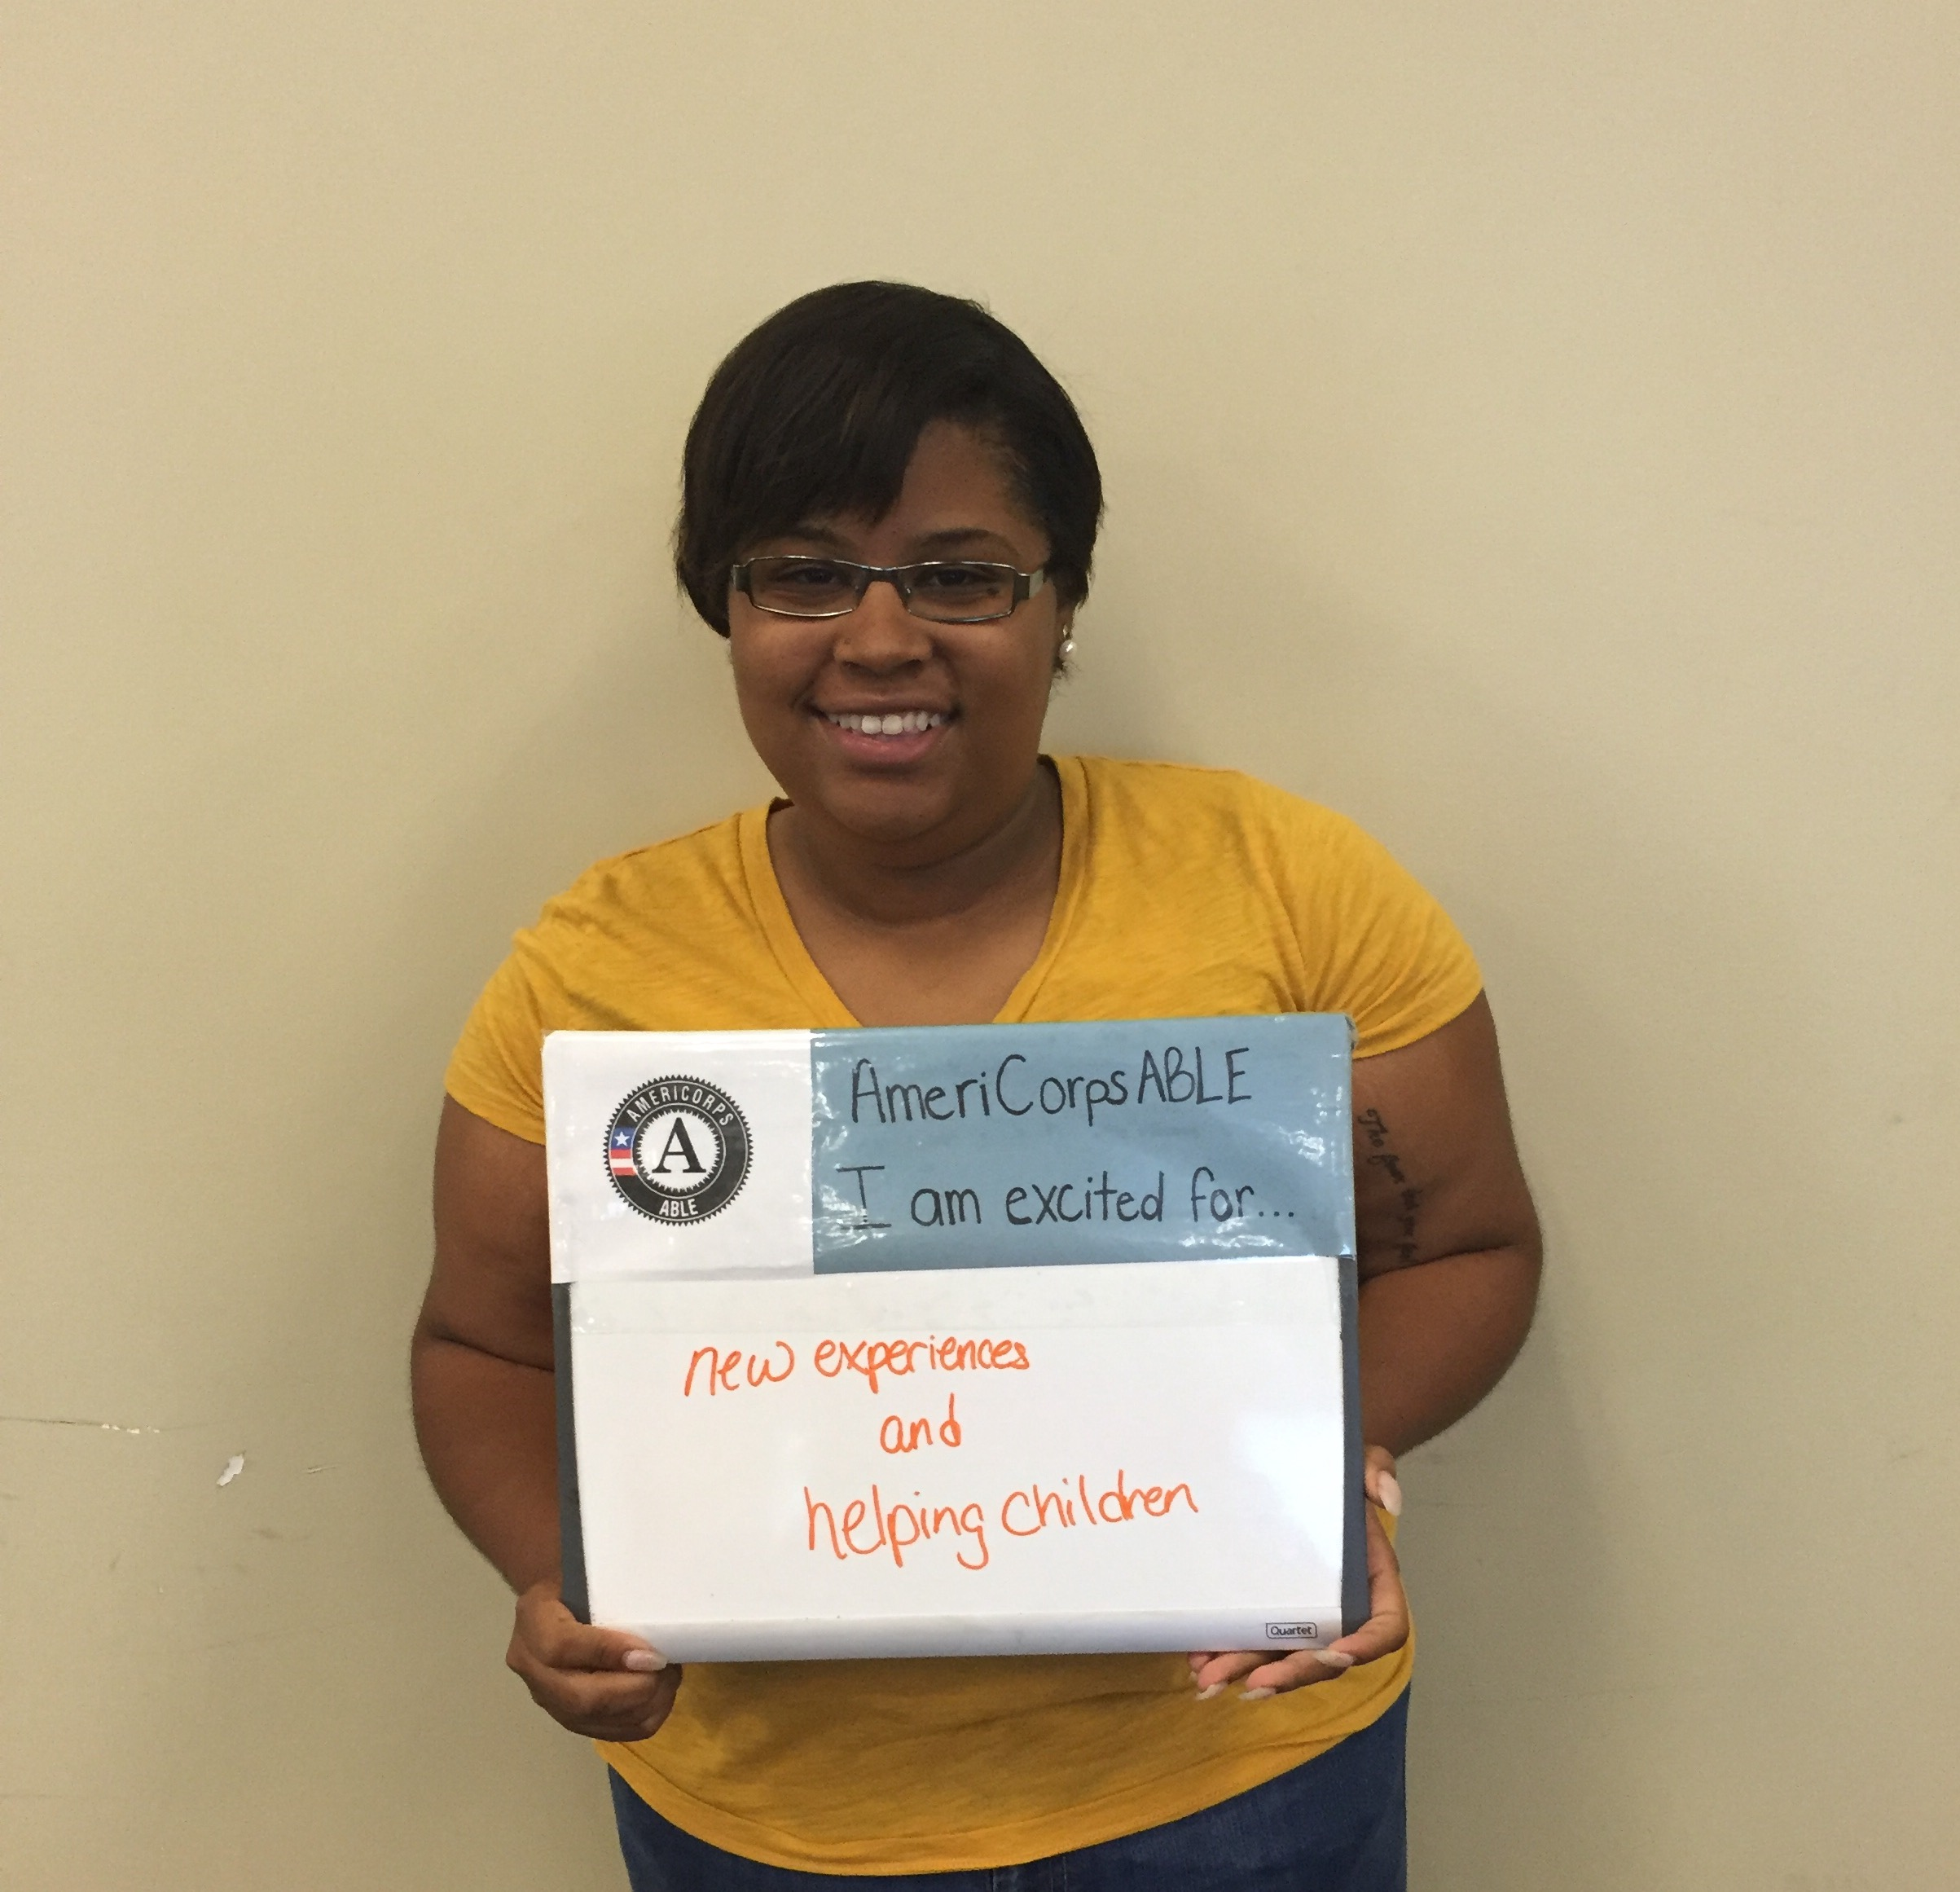 AmeriCORPS ABLE